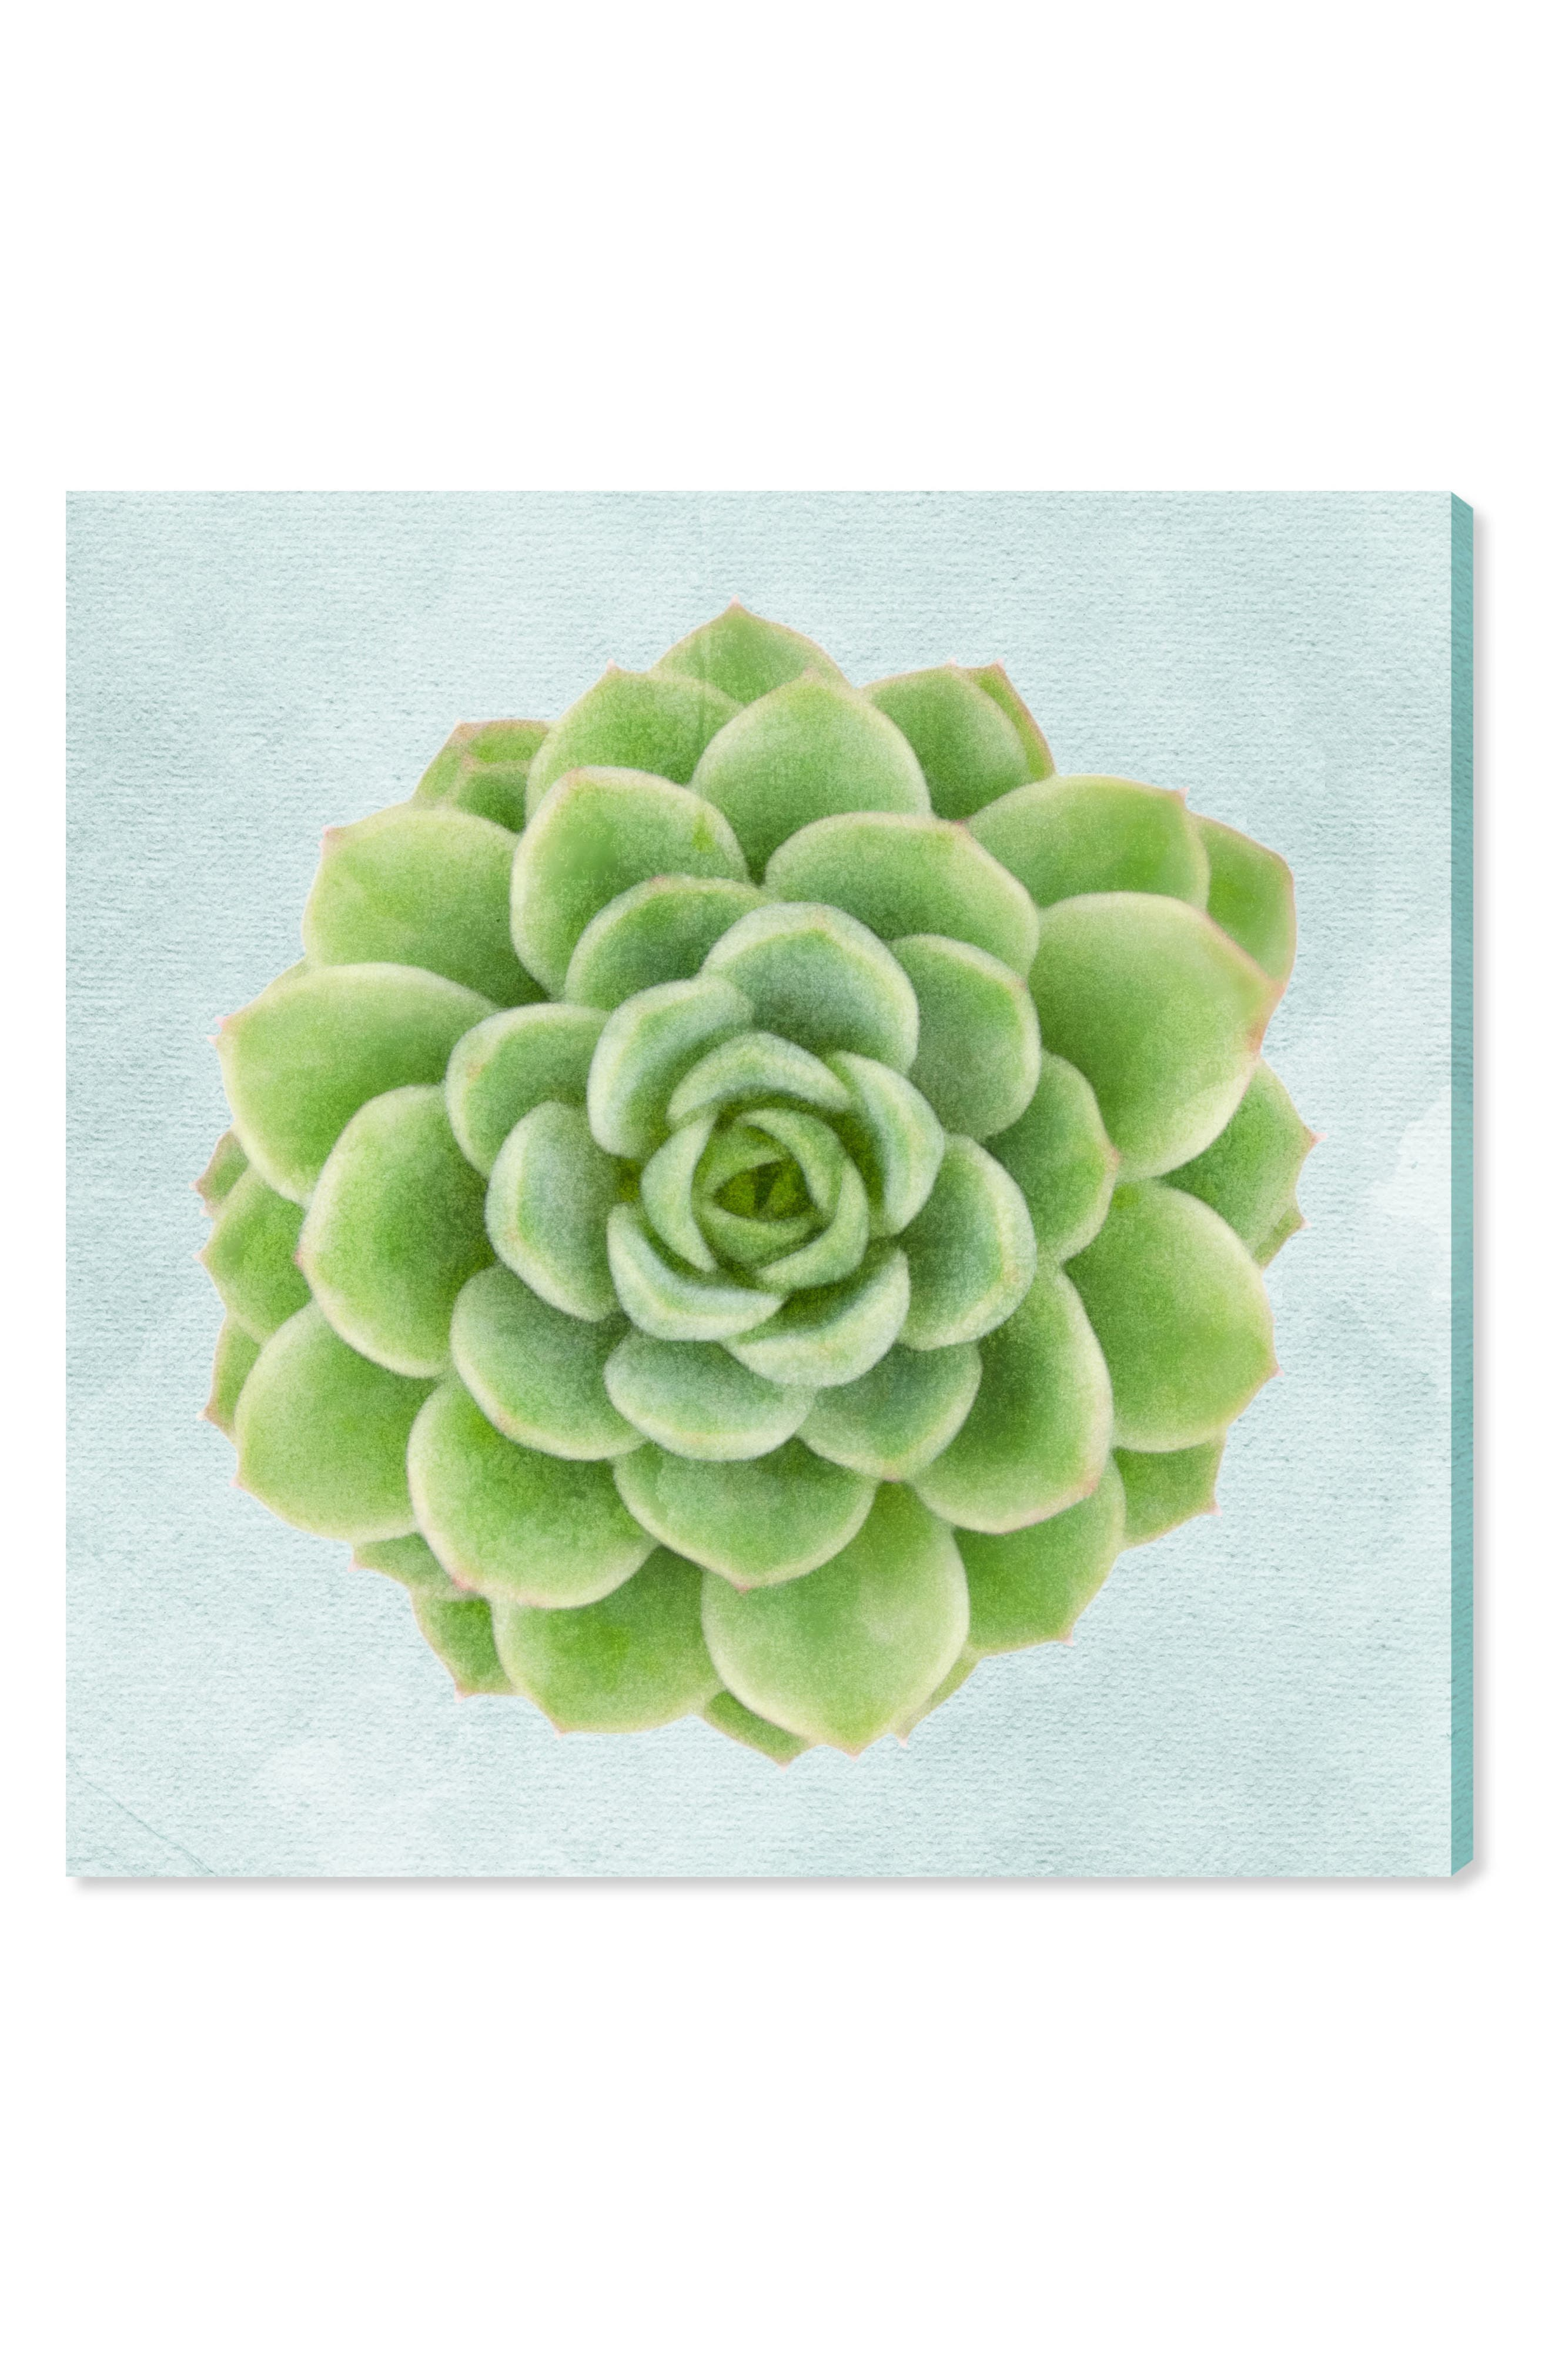 Alternate Image 1 Selected - Oliver Gal Succulent Dream I Canvas Wall Art